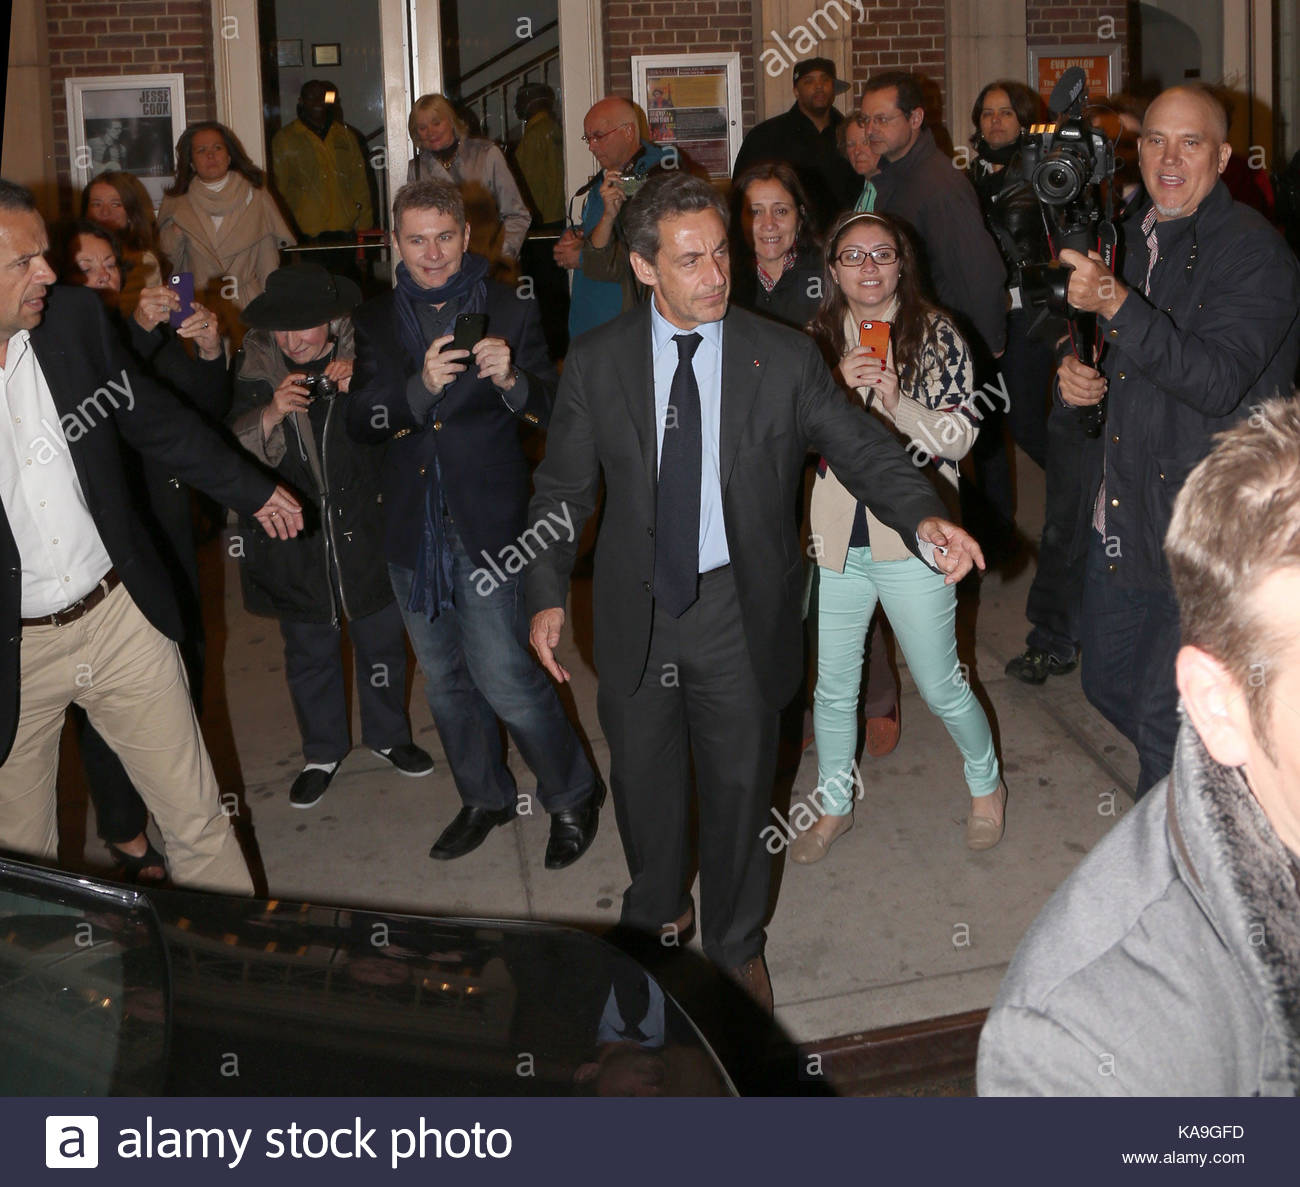 Bruni and Sarkozy walked out on the side. 11.03.2010 98